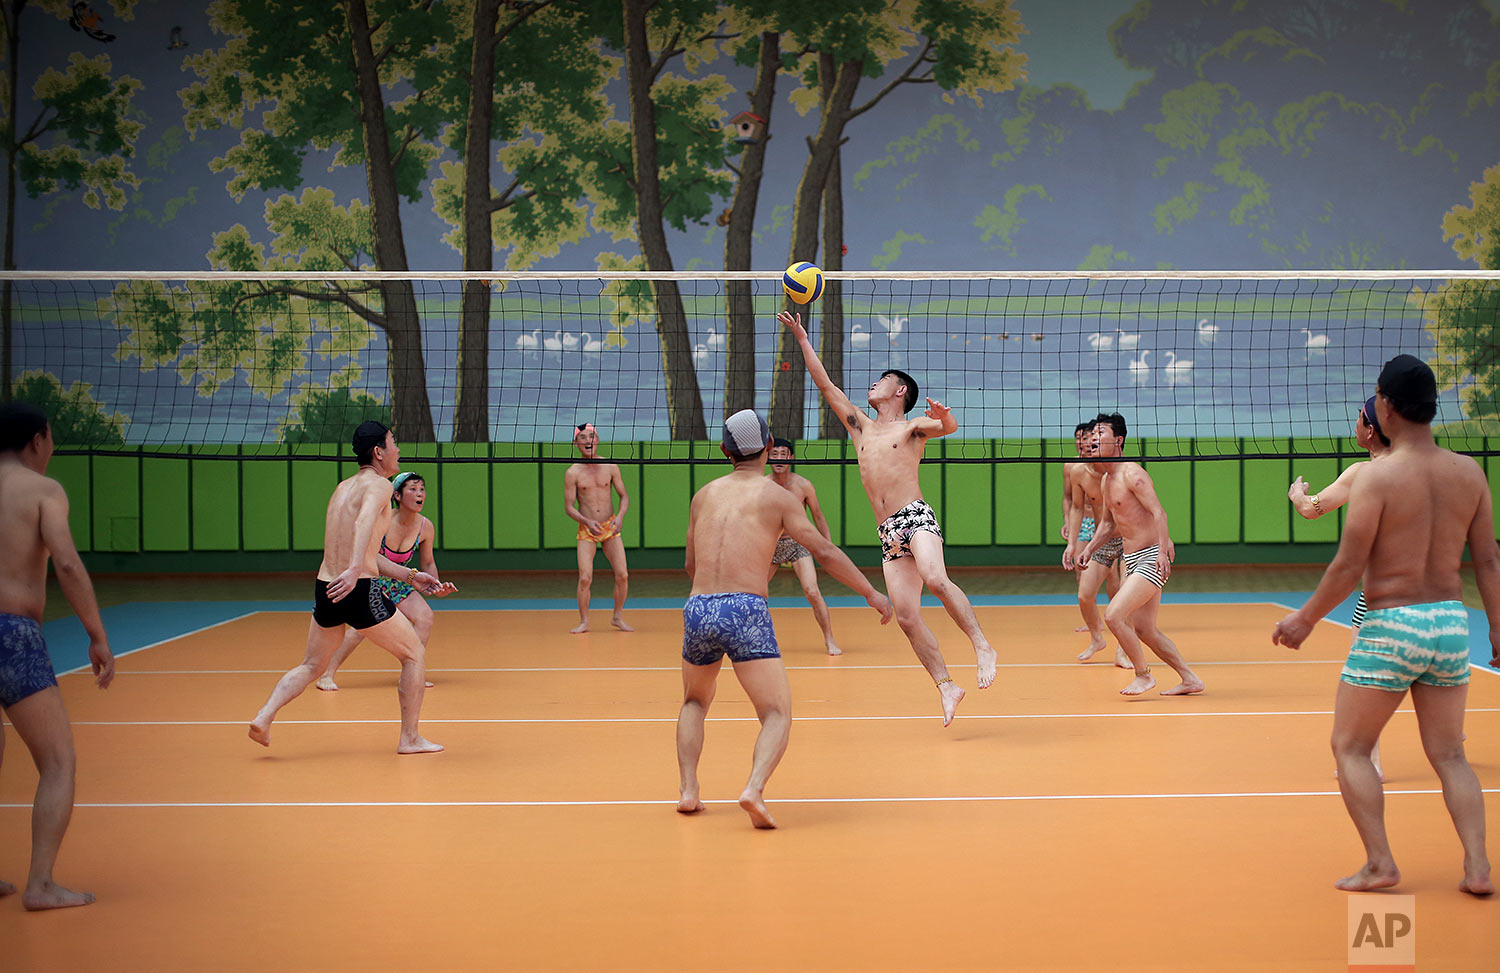 People dressed in their swim suits play volleyball at the Munsu water park in Pyongyang, North Korea, on Dec. 1, 2015. The water park is open to both tourists and locals living in the North Korean capital. (AP Photo/Wong Maye-E)